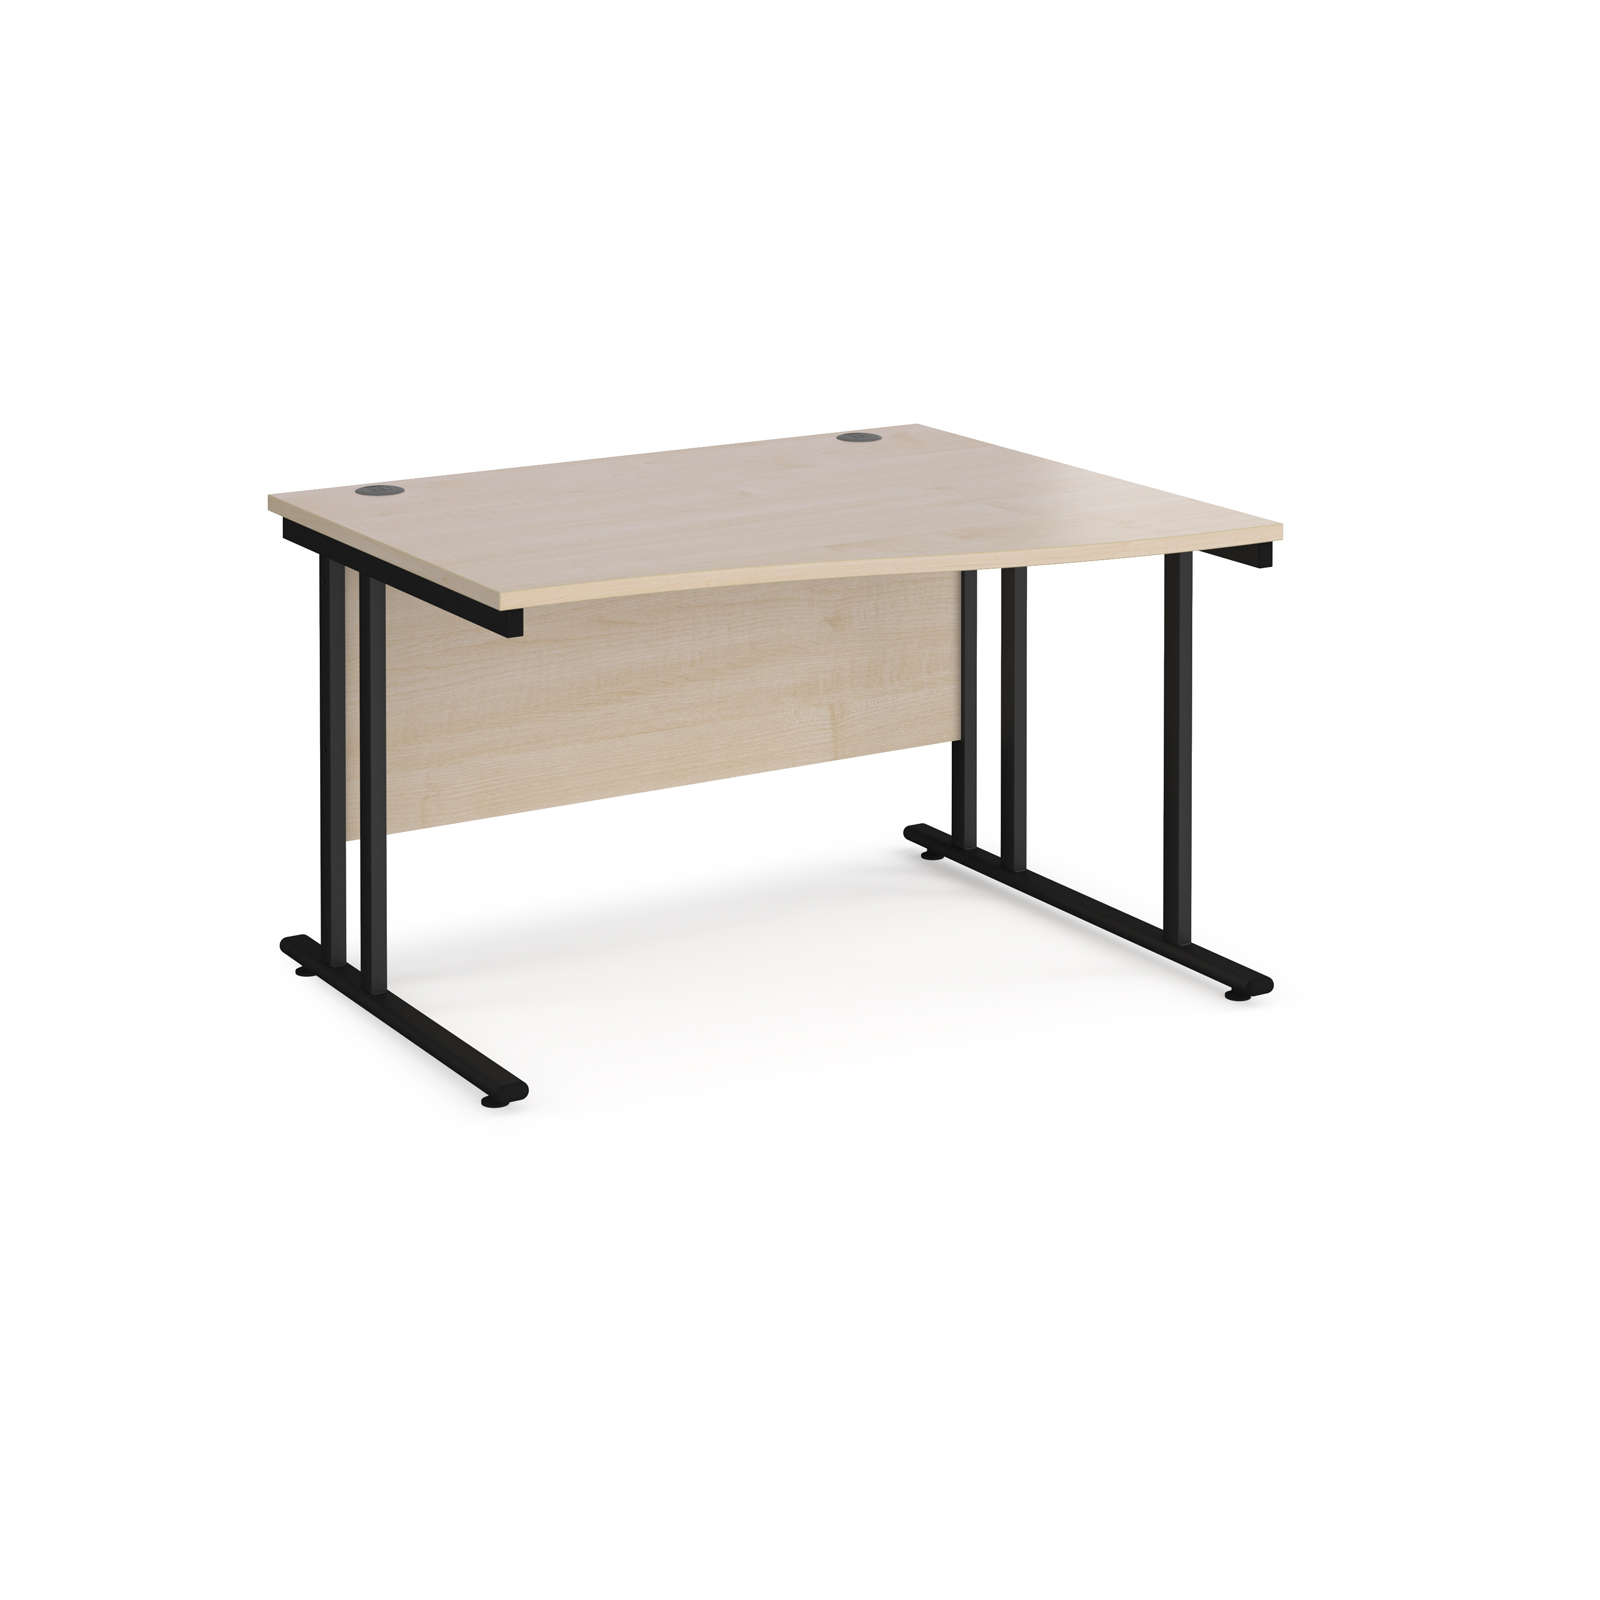 Right Handed Maestro 25 right hand wave desk 1200mm wide - black cantilever leg frame, maple top